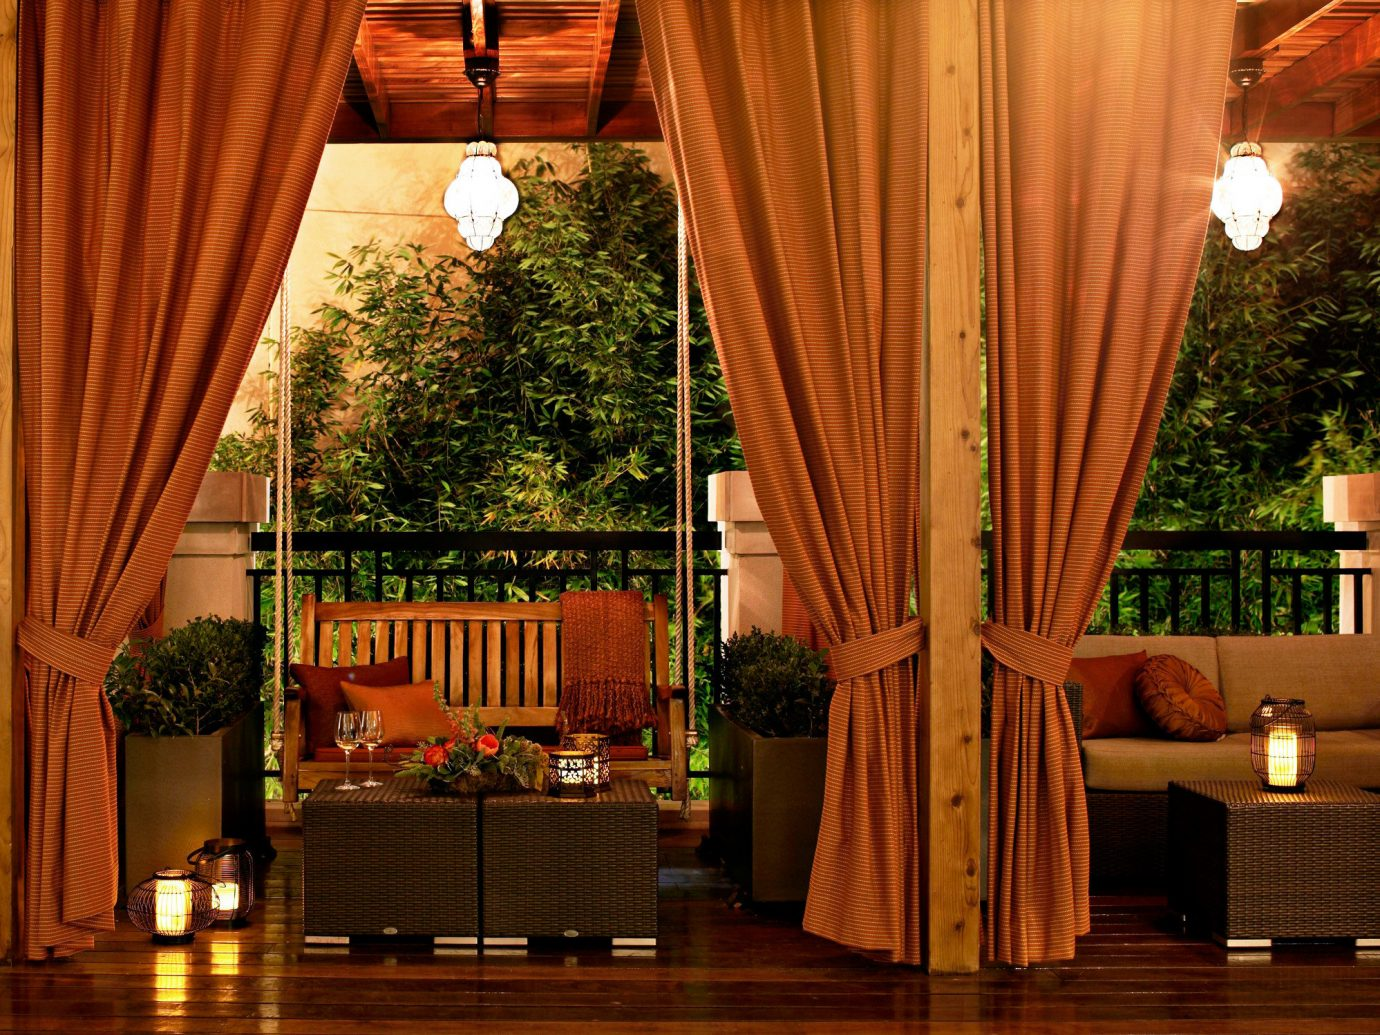 Elegant Hotels Lobby Lounge Romance indoor room curtain interior design home estate window treatment wood living room window covering textile furniture decorated